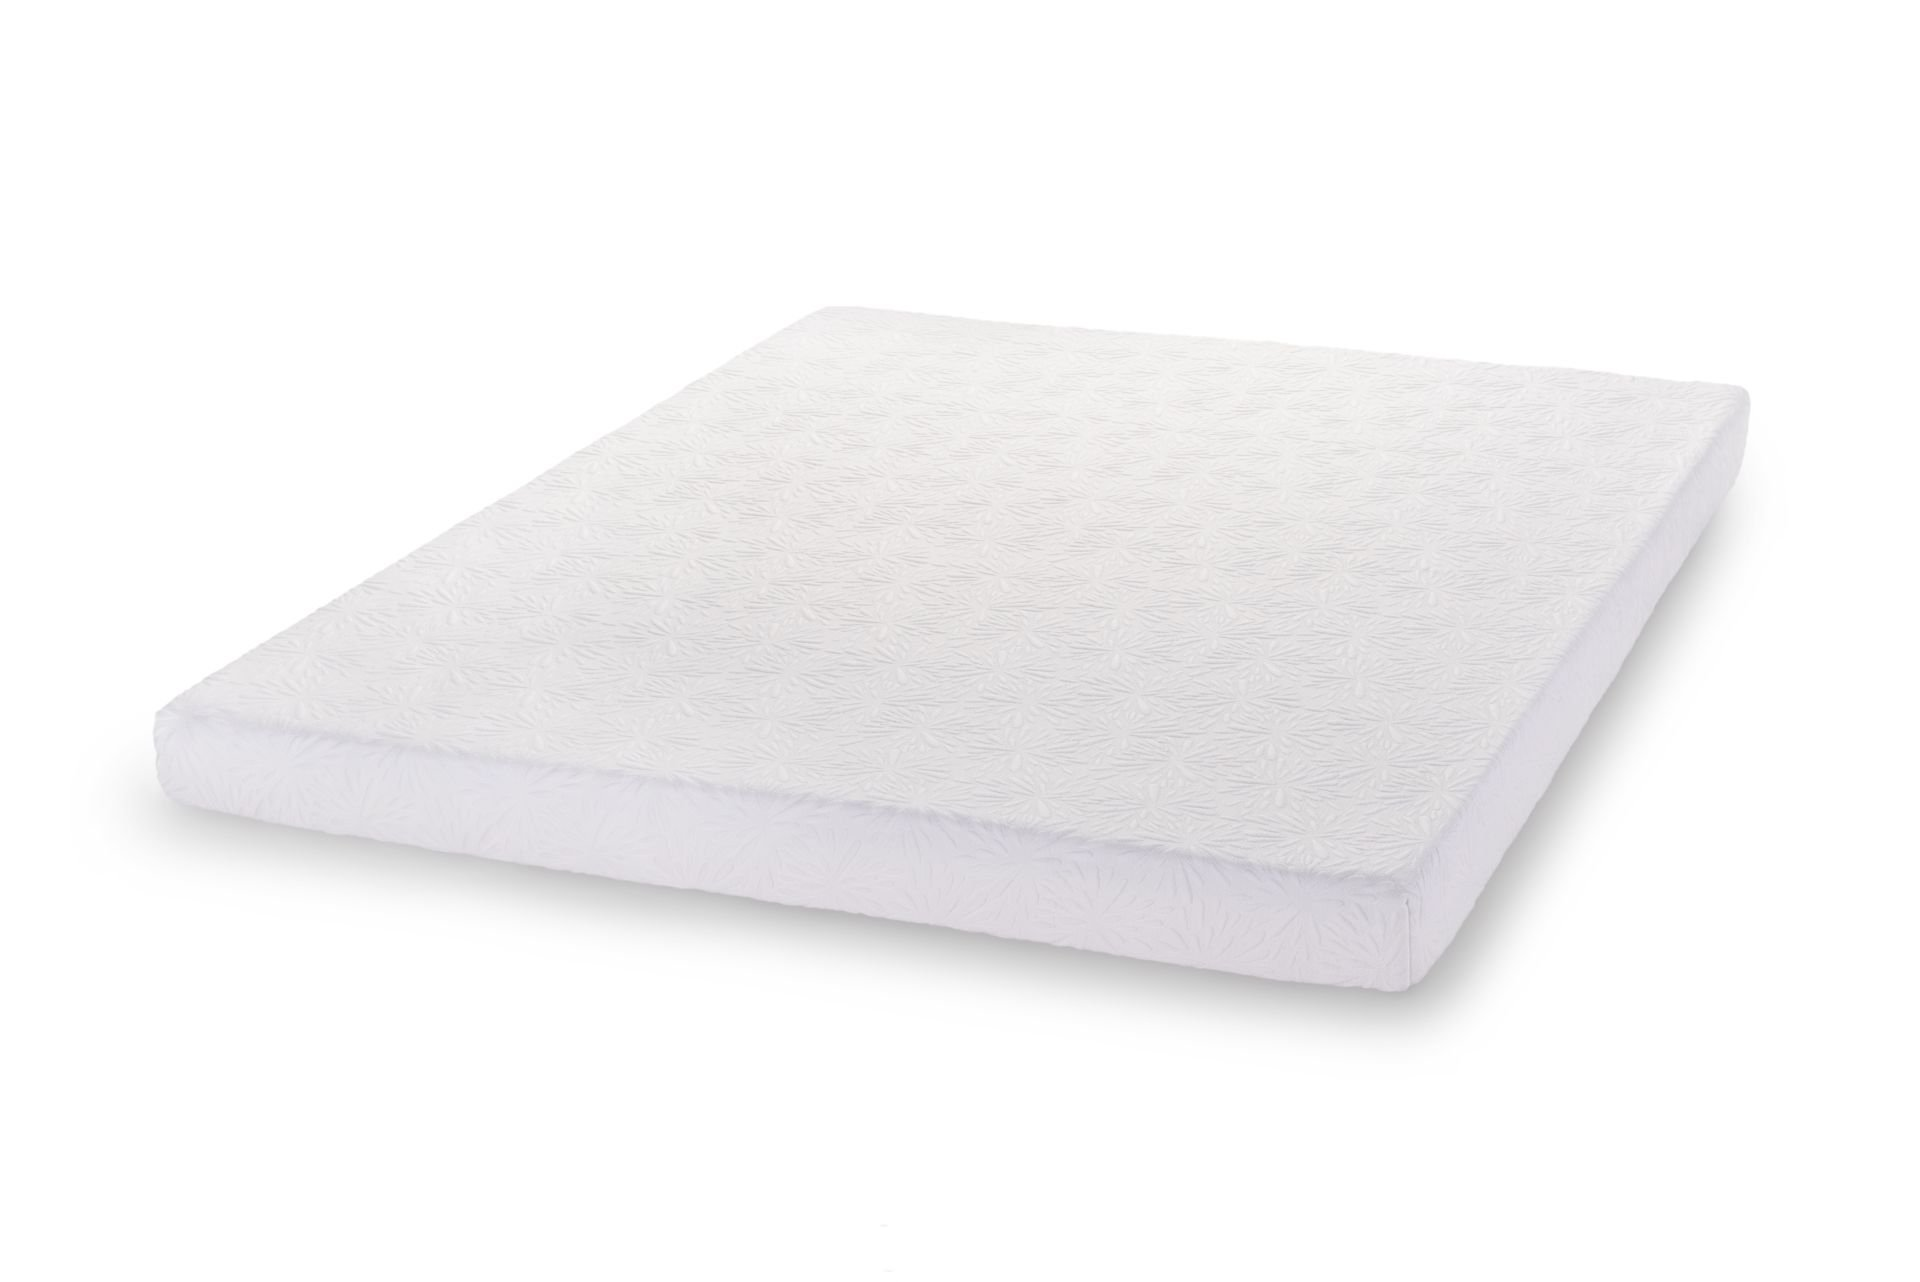 PlushBeds Gel Memory Foam Sofa Bed Mattress, Queen by PlushBeds